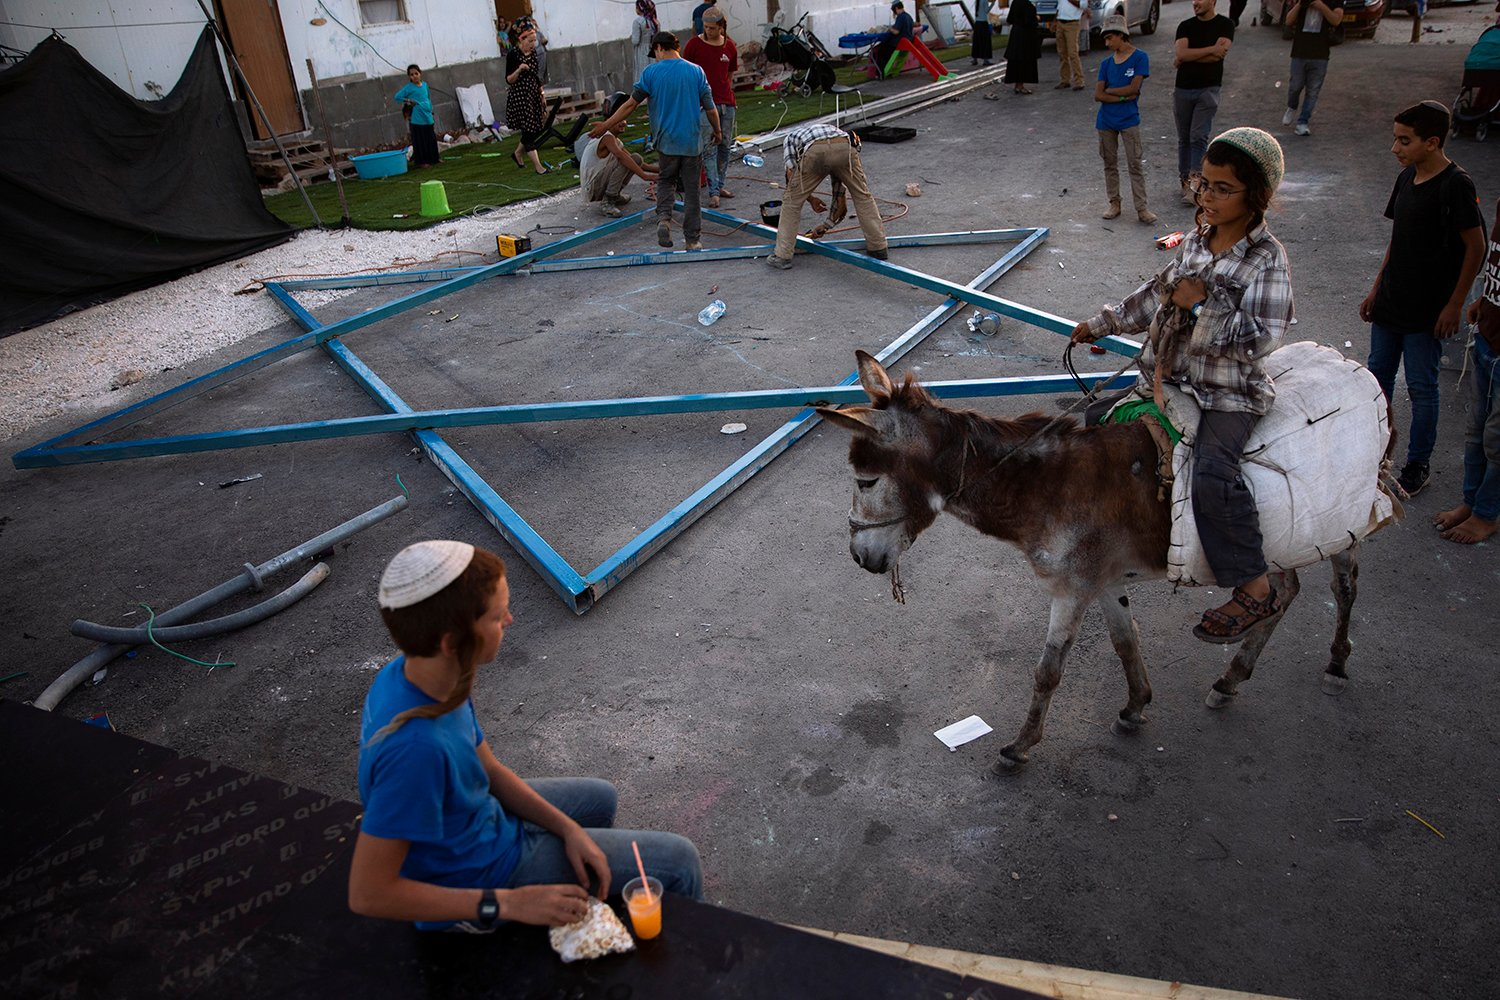 An Israeli settler rides a donkey as others build large Star of David in the recently established wildcat outpost of Eviatar near the West Bank city of Nablus, Thursday, July 1, 2021. Israel has reached a compromise with Jewish settlers which they will leave by the end of the week and the area will become a closed military zone, but the houses and roads will remain in place. (AP Photo/Oded Balilty)